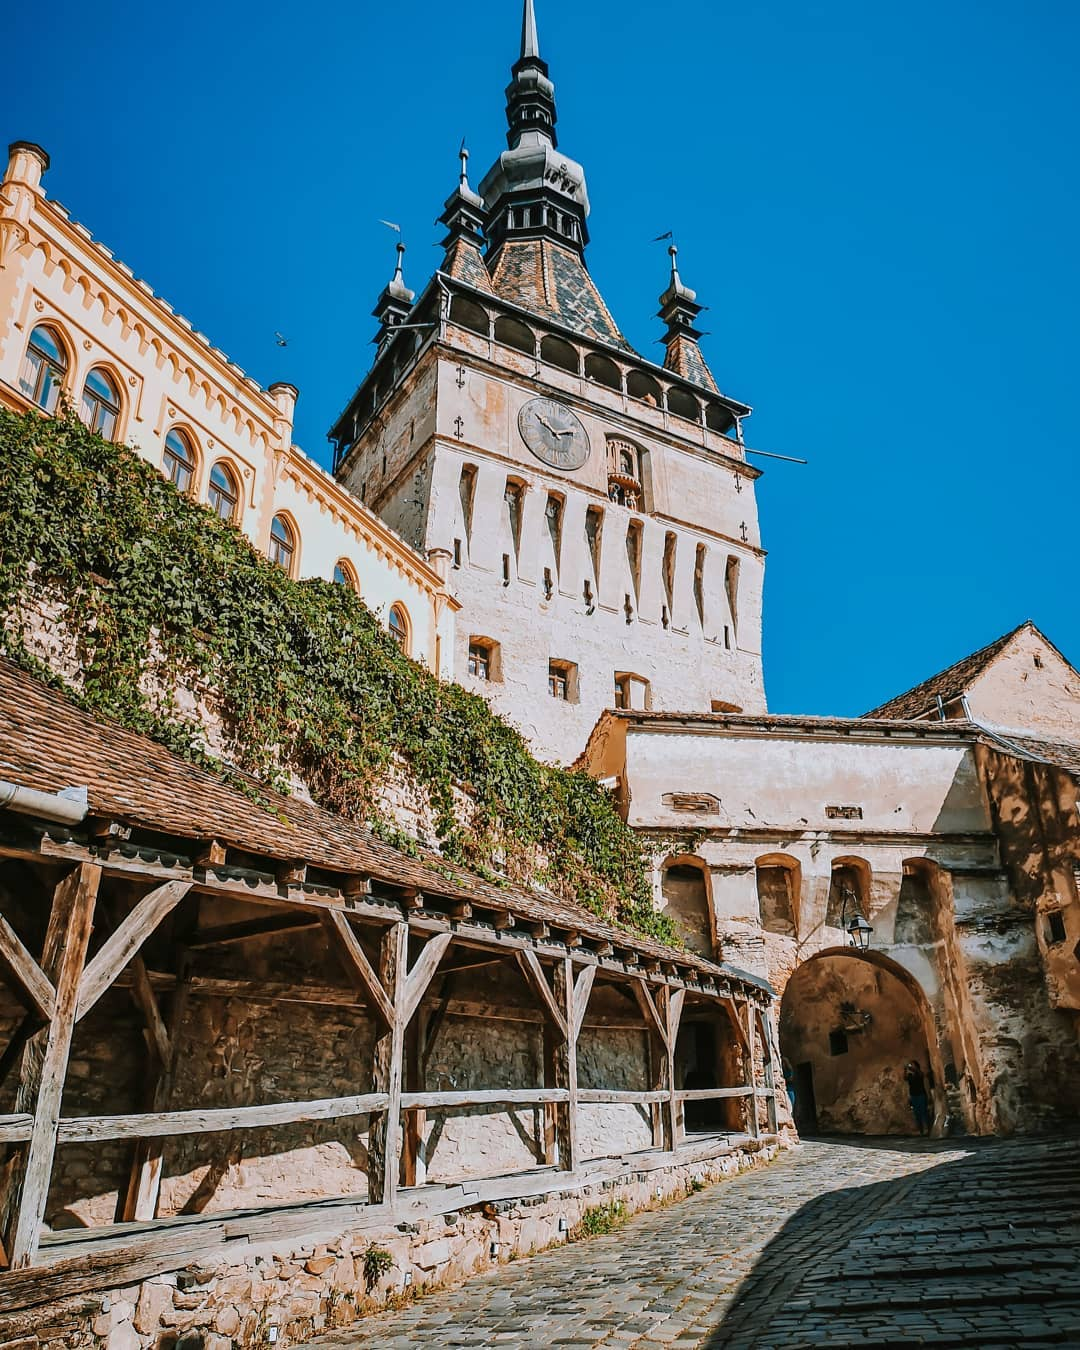 Top 10 things to do in Sighisoara, Romania